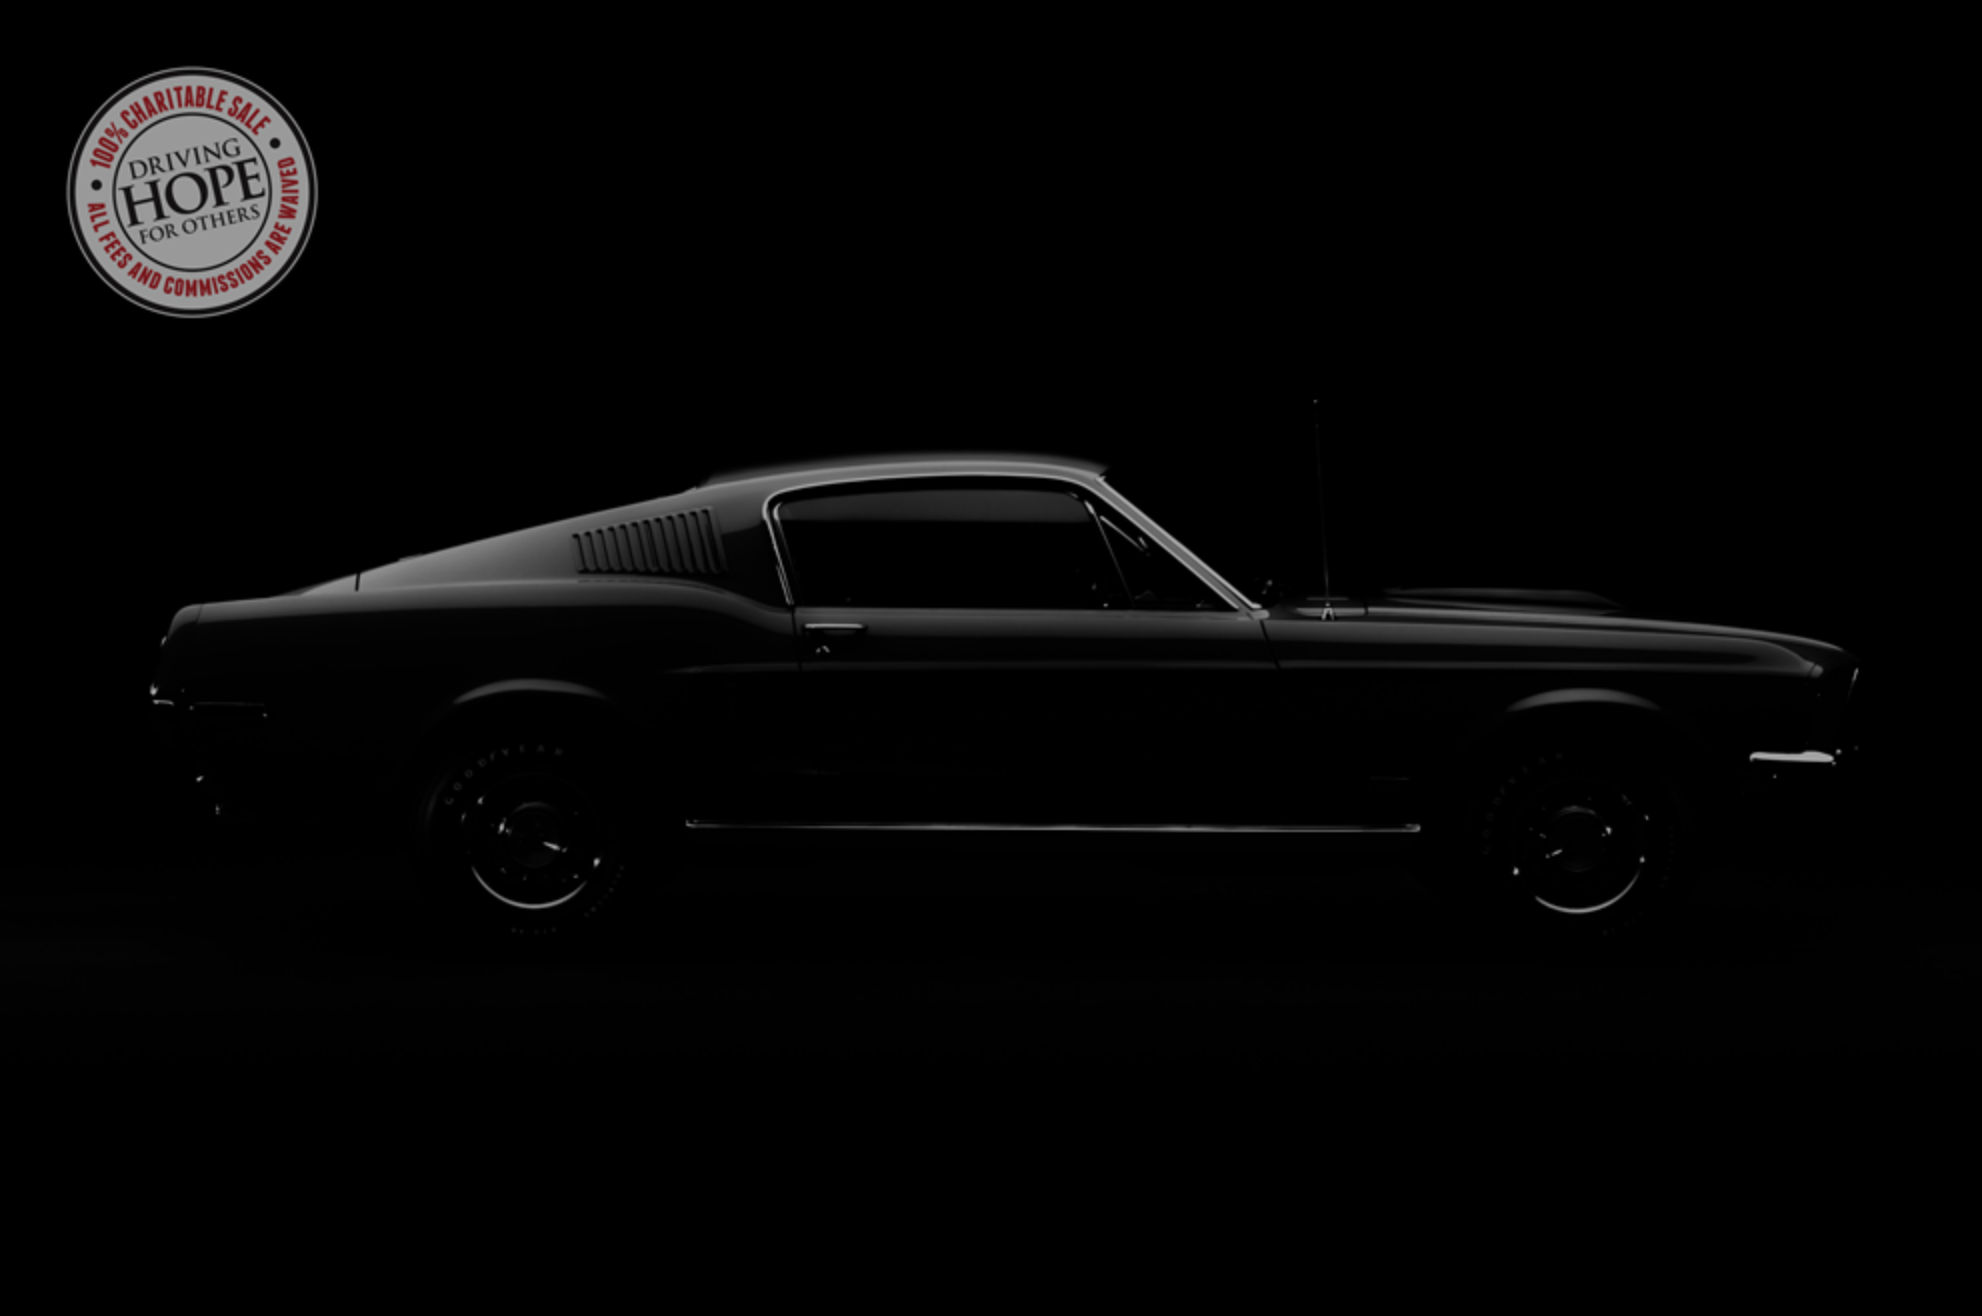 Ford Mustang Bullitt rumored for Detroit Auto Show